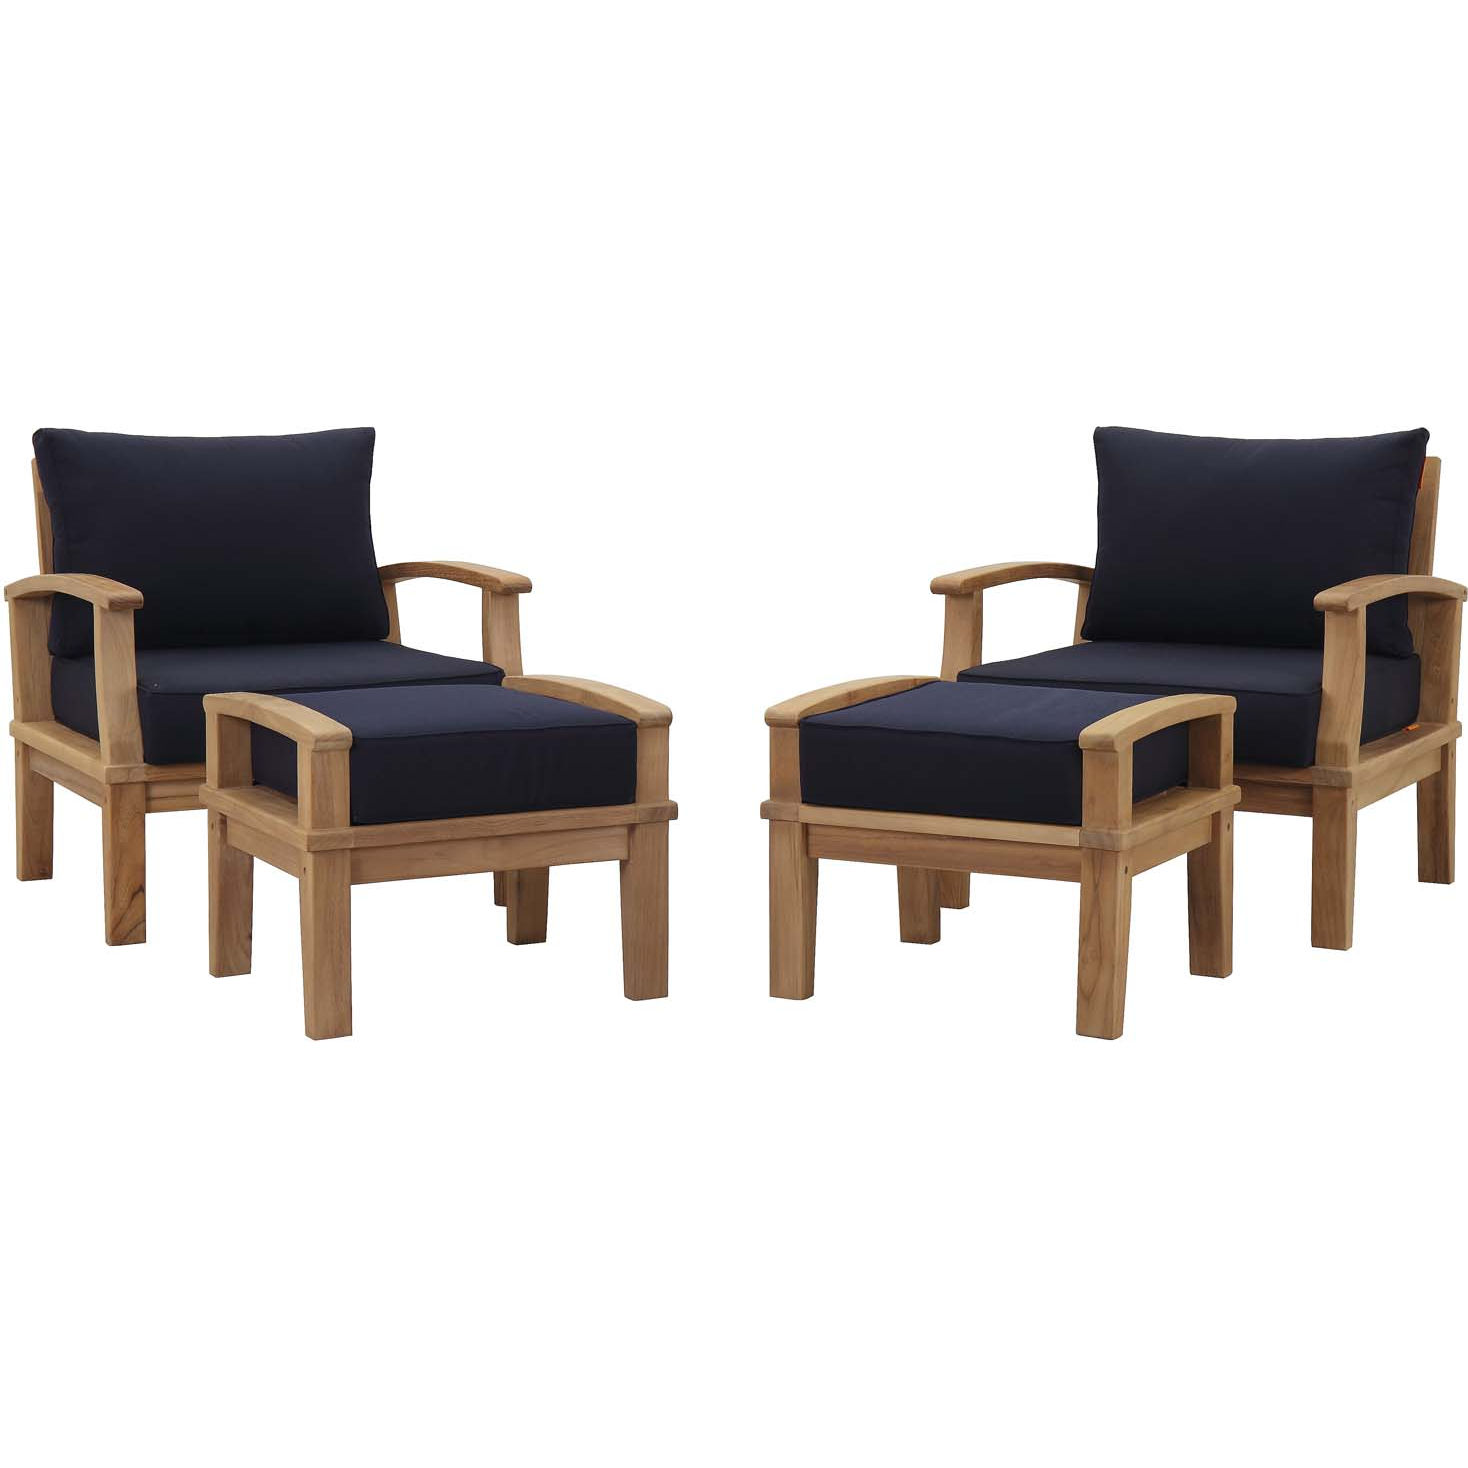 Fantastic Marina 4 Piece Outdoor Arm Chair Set In Teak Navy Blue Fabric By Modway Pdpeps Interior Chair Design Pdpepsorg